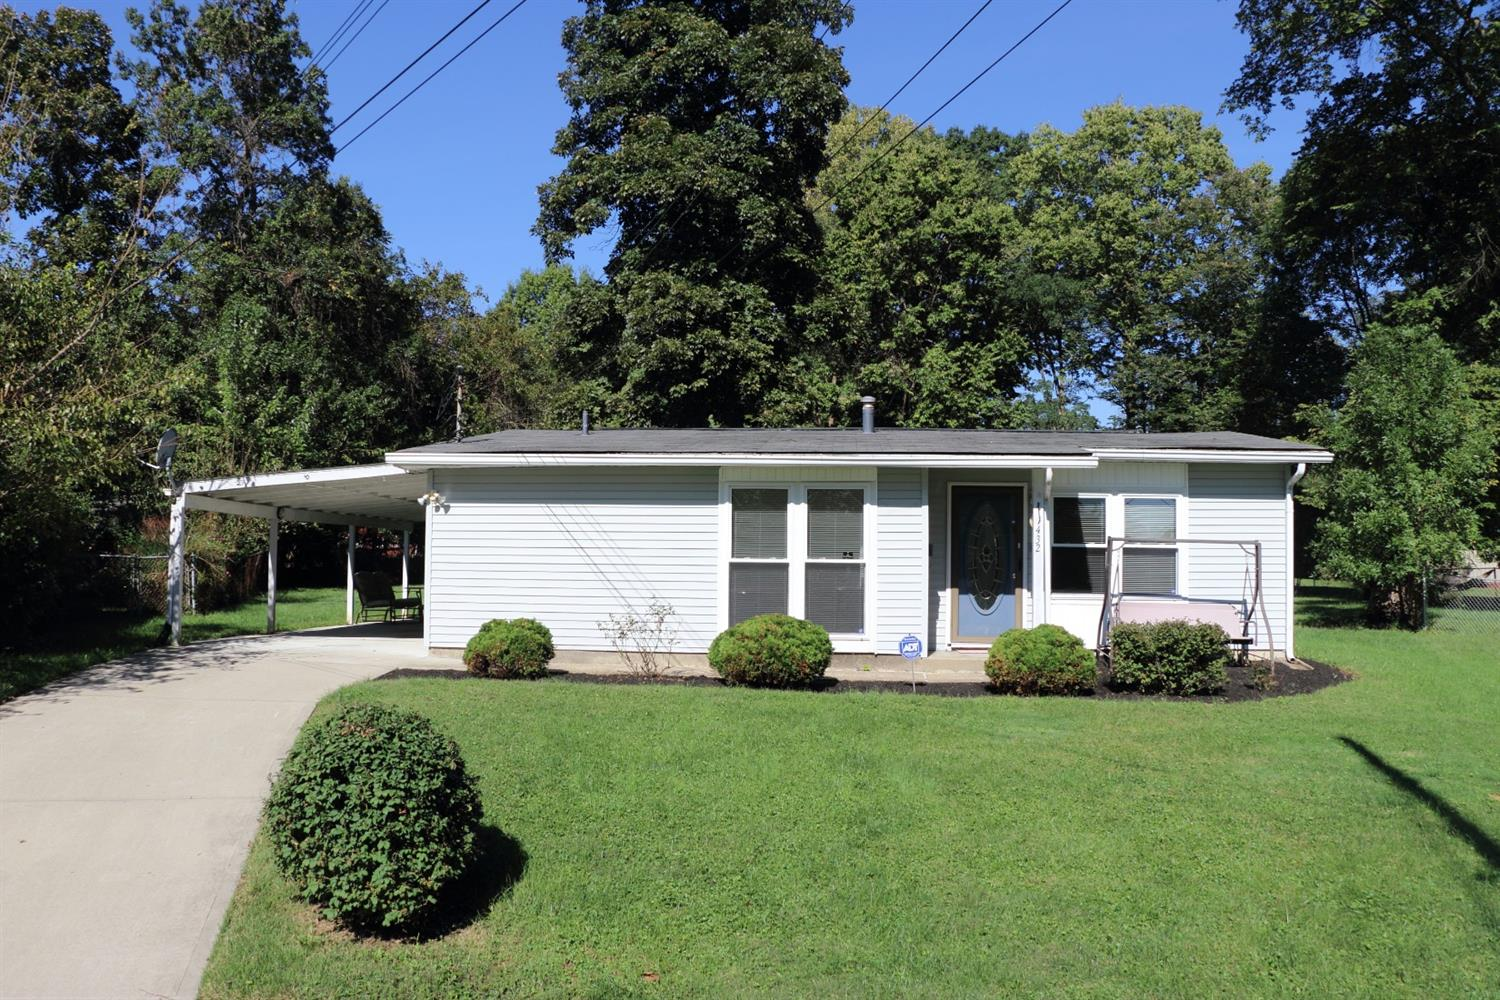 Property for sale at 1432 Tuscarora Drive, Loveland,  OH 45140